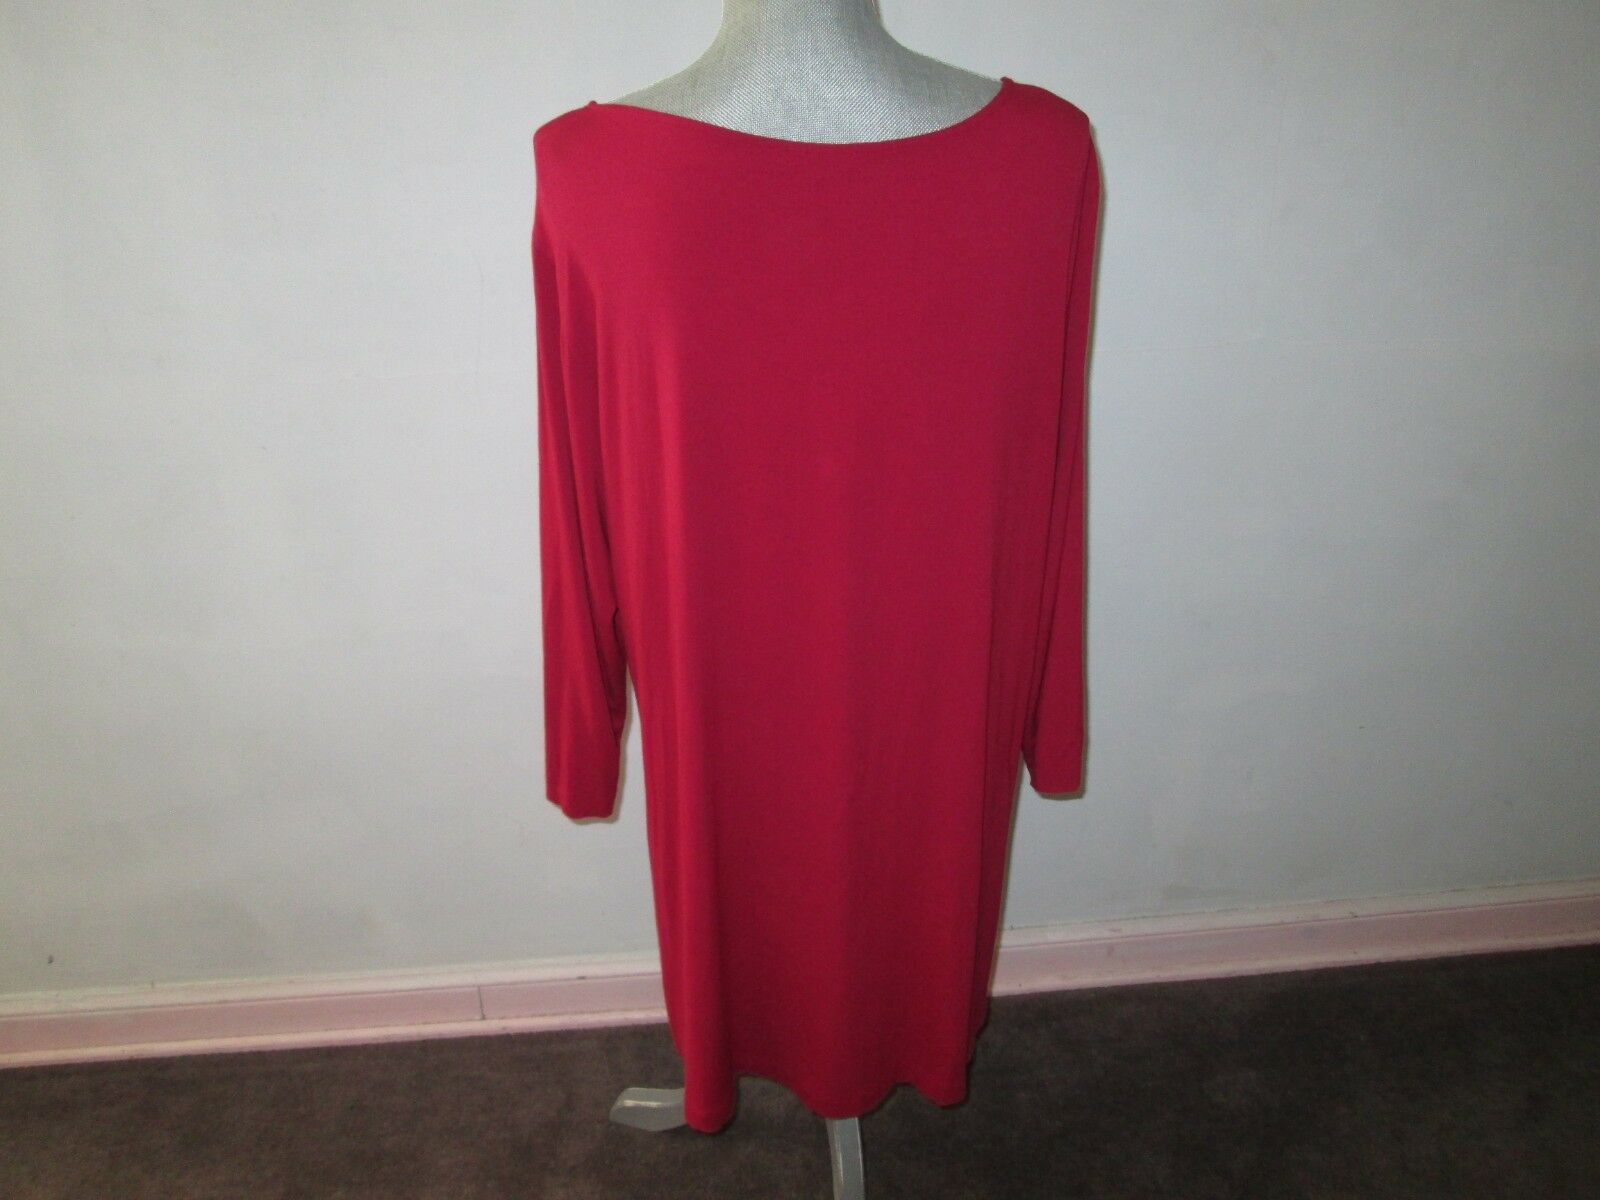 EILEEN FISHER FISHER FISHER Red Stretch JerseyTwist Knot Front 3 4 Sleeve Dress Size 1X b294f0